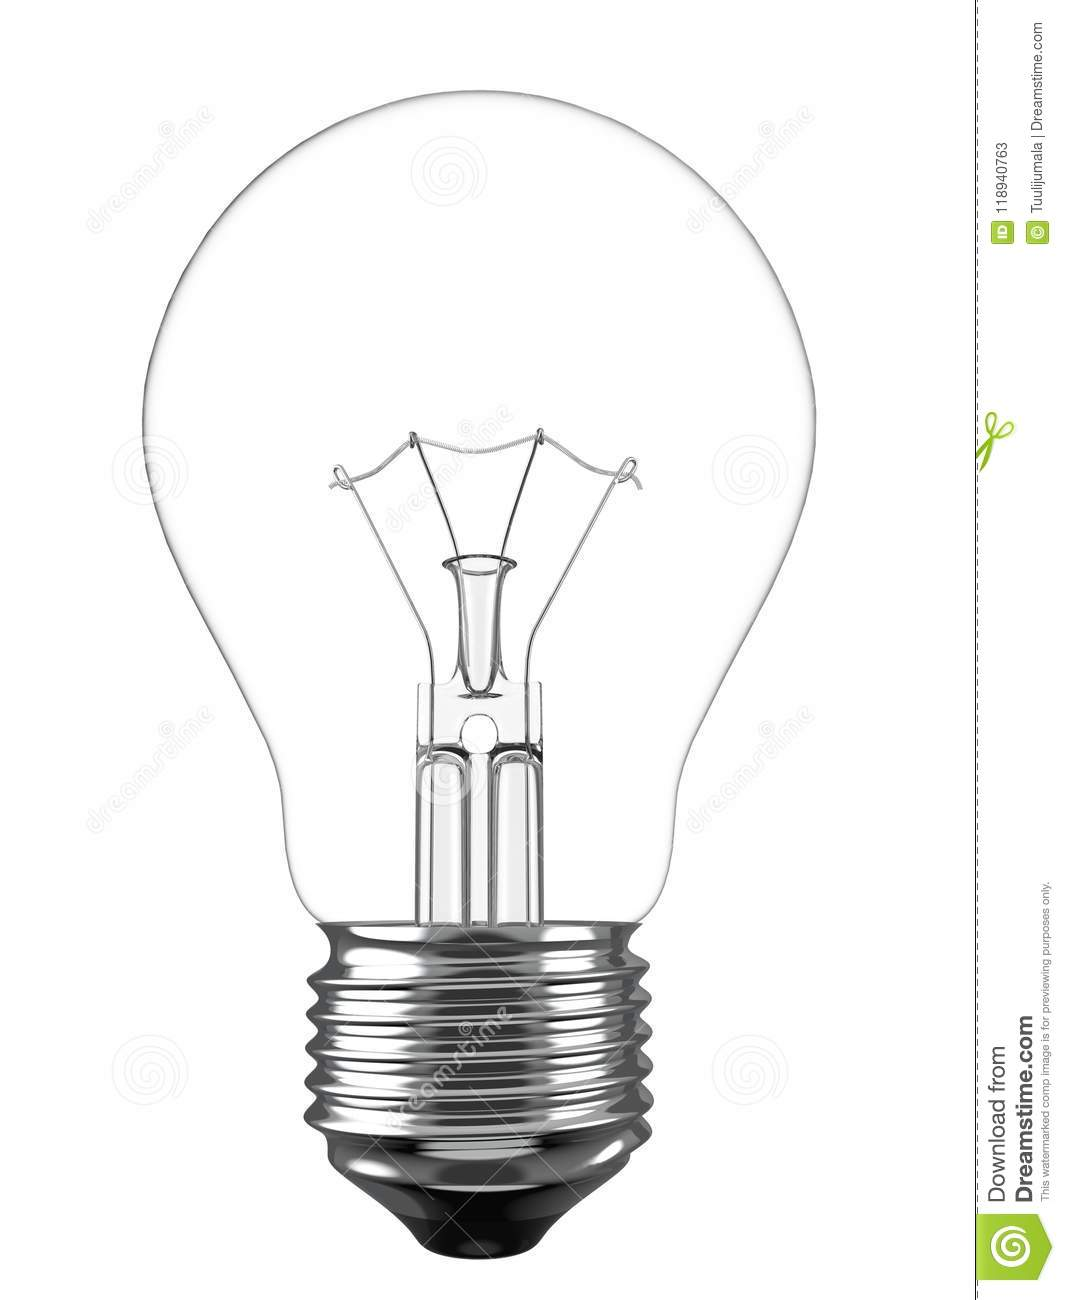 Electric Light Bulb Isolated On White Background Stock